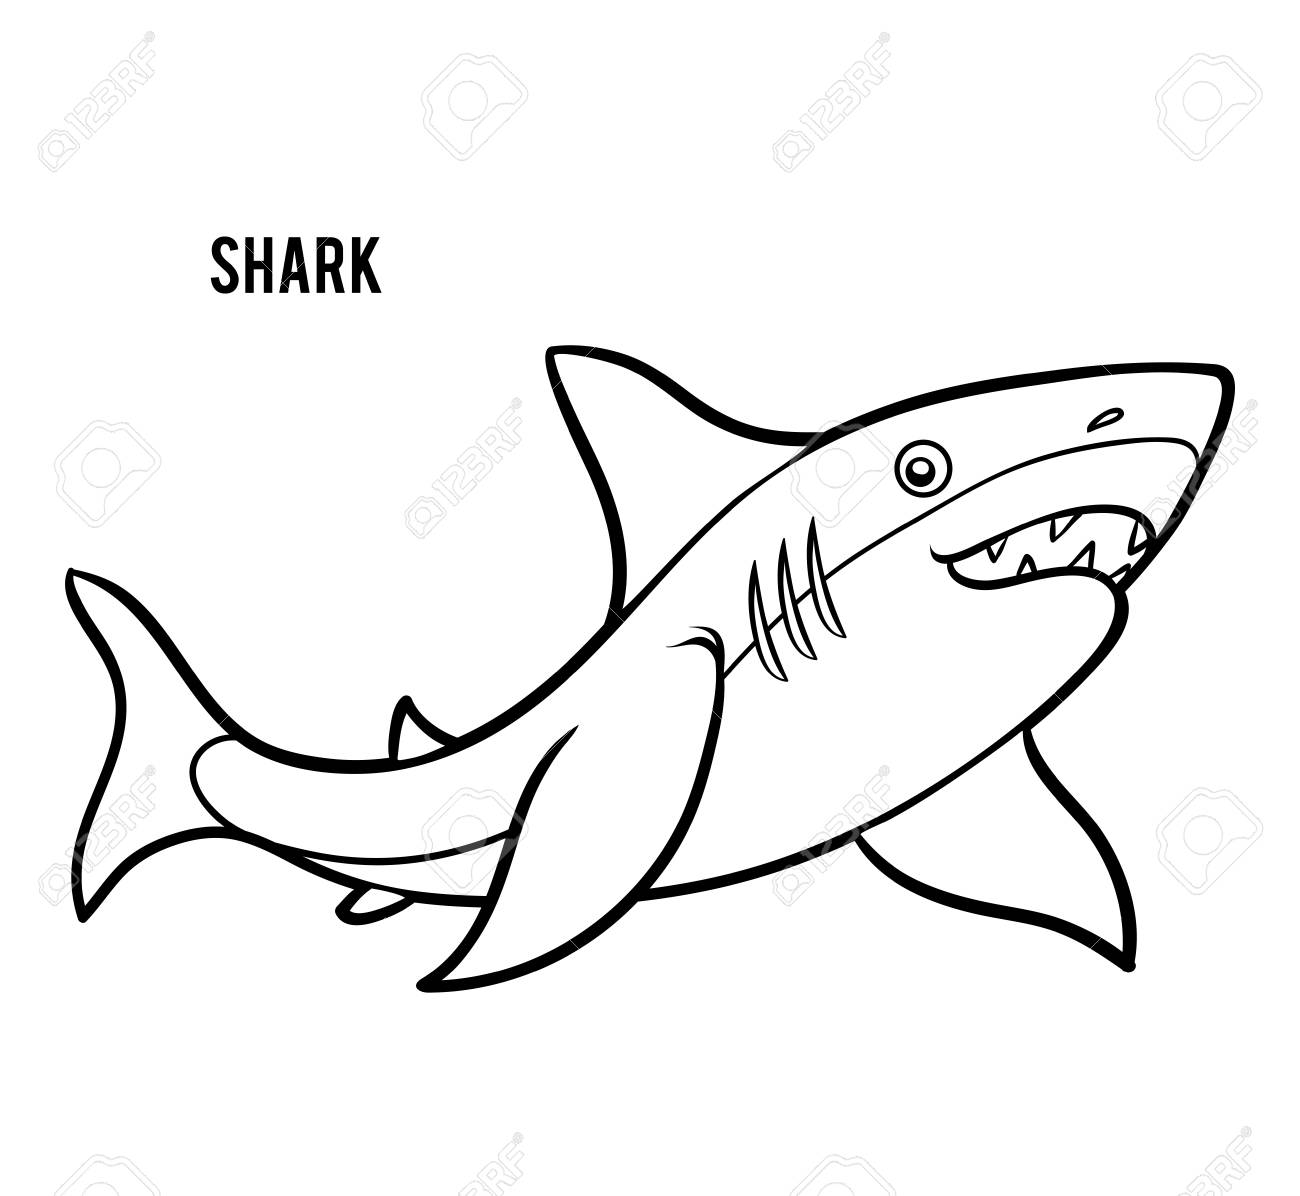 - Coloring Book For Children, Cartoon Animal Shark Royalty Free